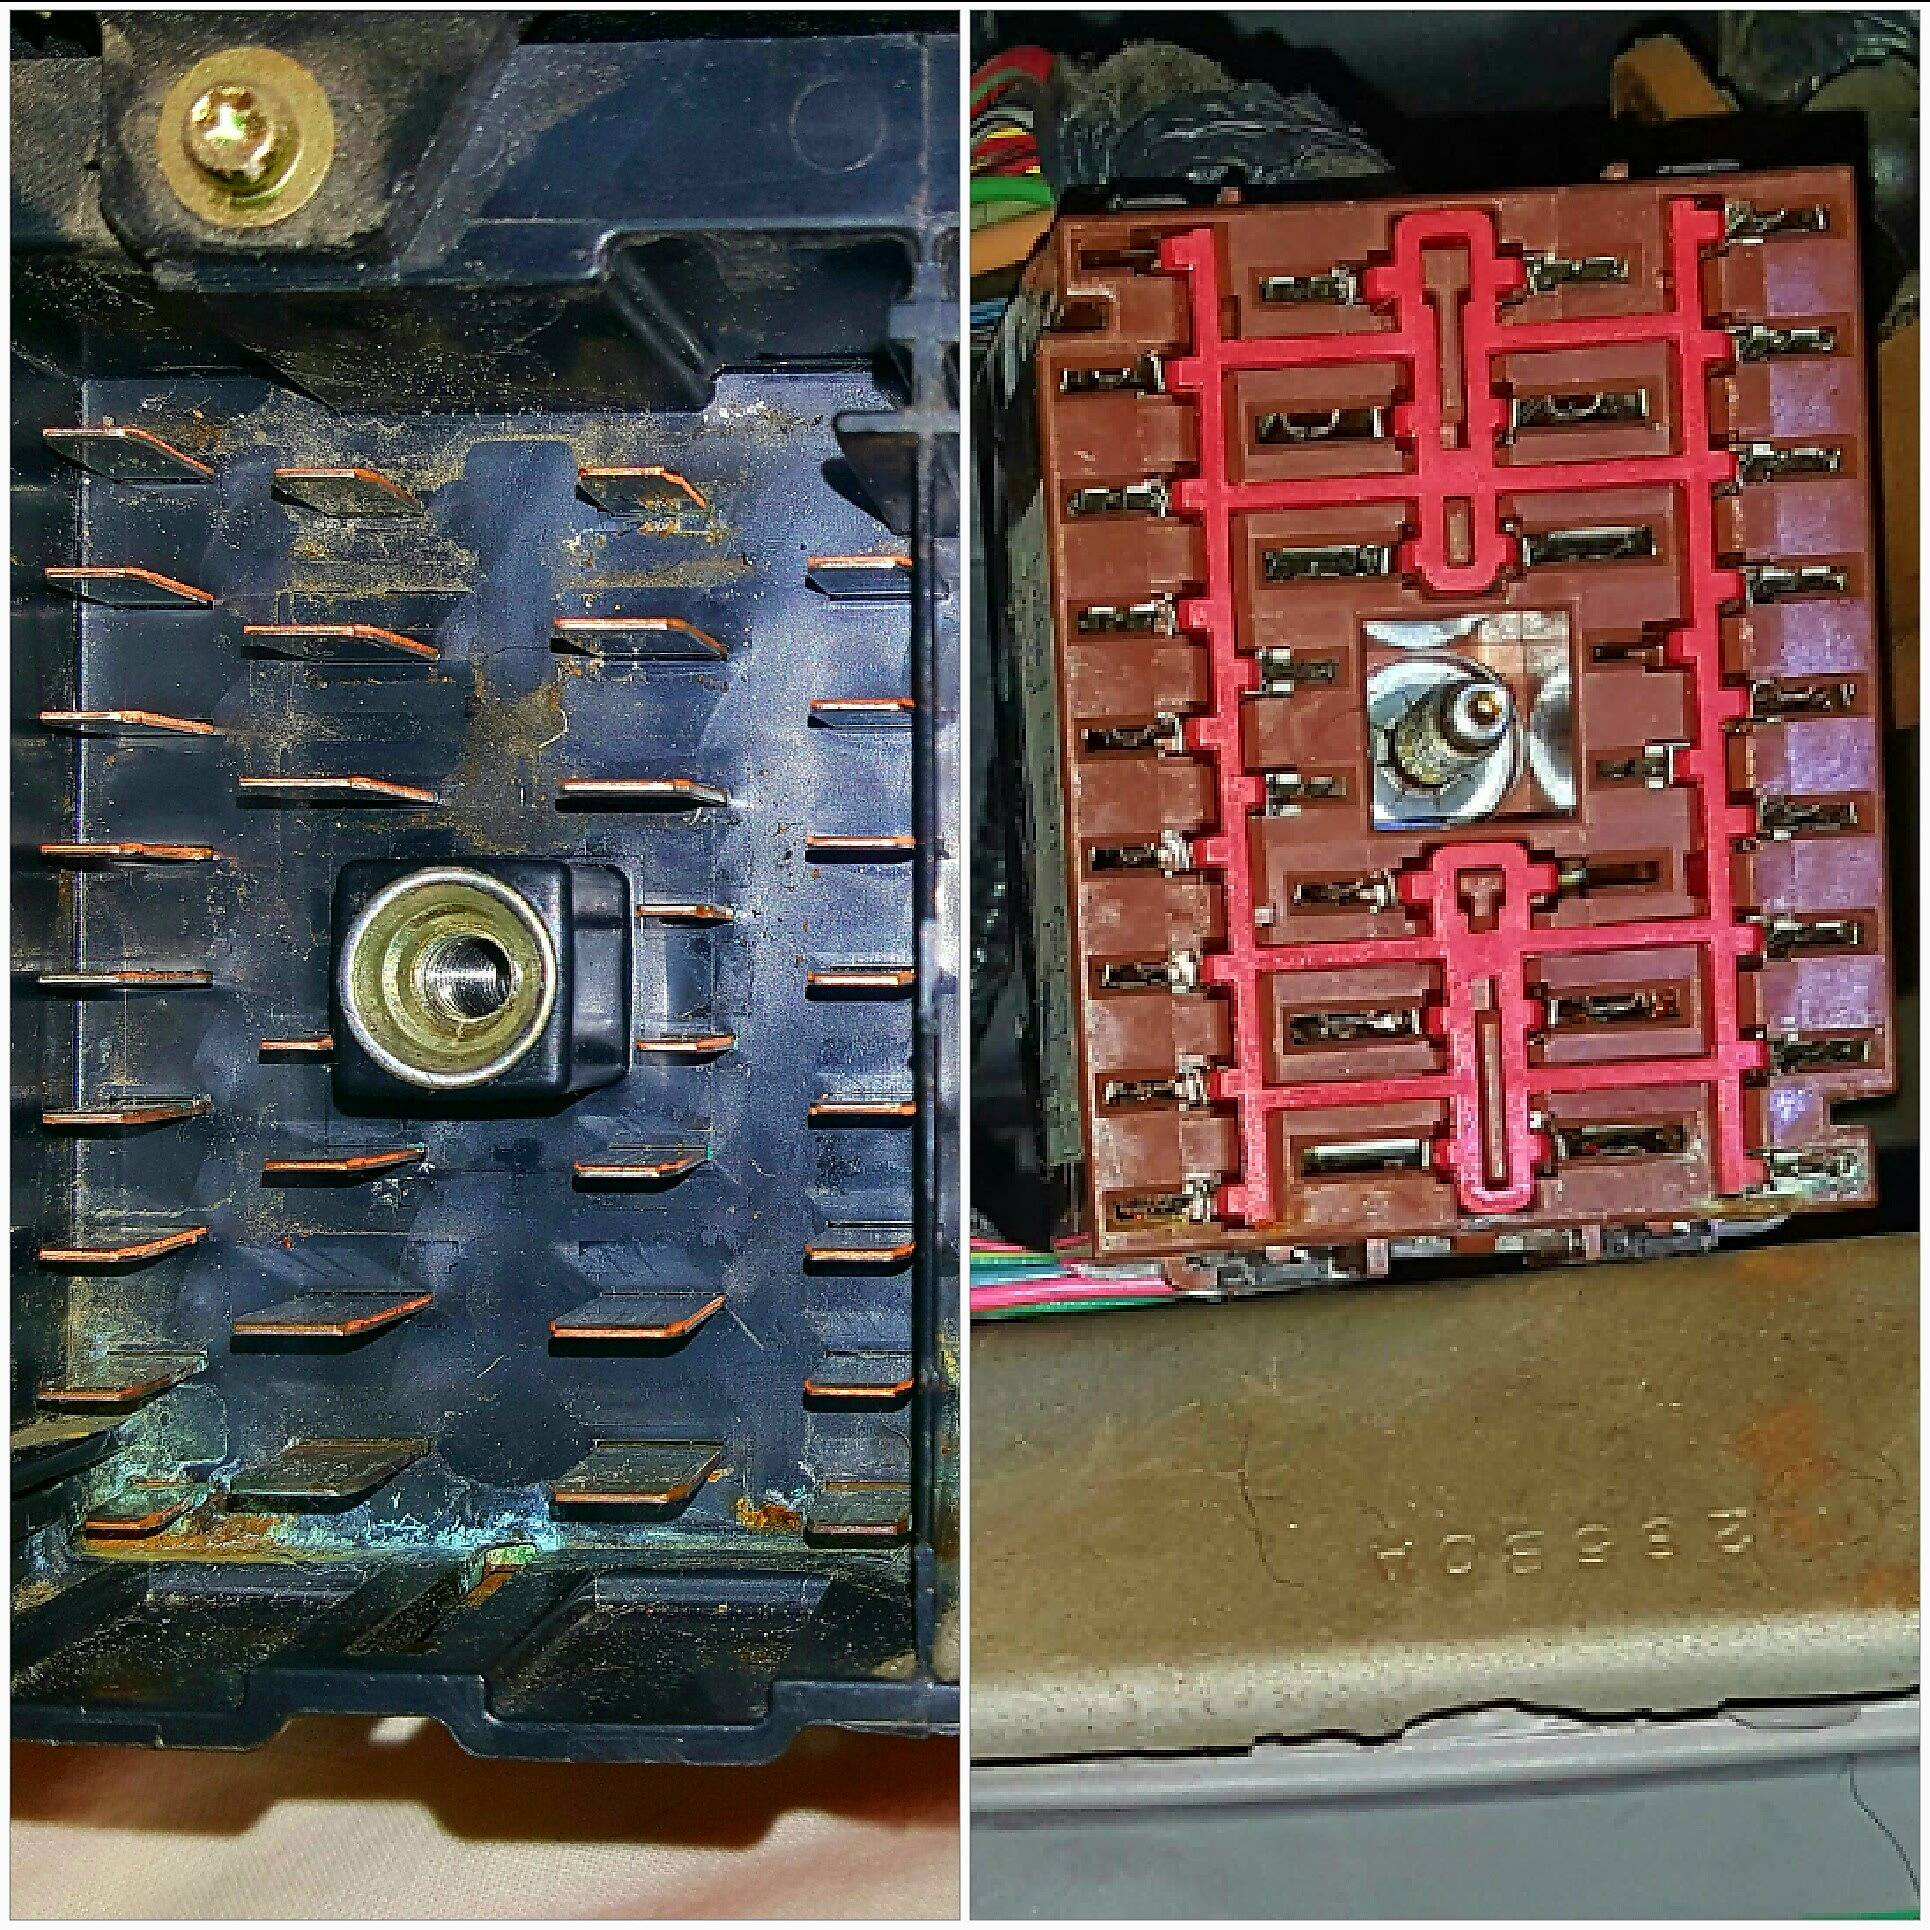 My Diy Story Excursion Fuse Box Gem Disassemble Clean Reinstall Ford For Sale To Tell You The Truth I Really Wasnt Looking Forward Disassembling Entire And Was Hoping By Simply Cleaning Just Prongs Their